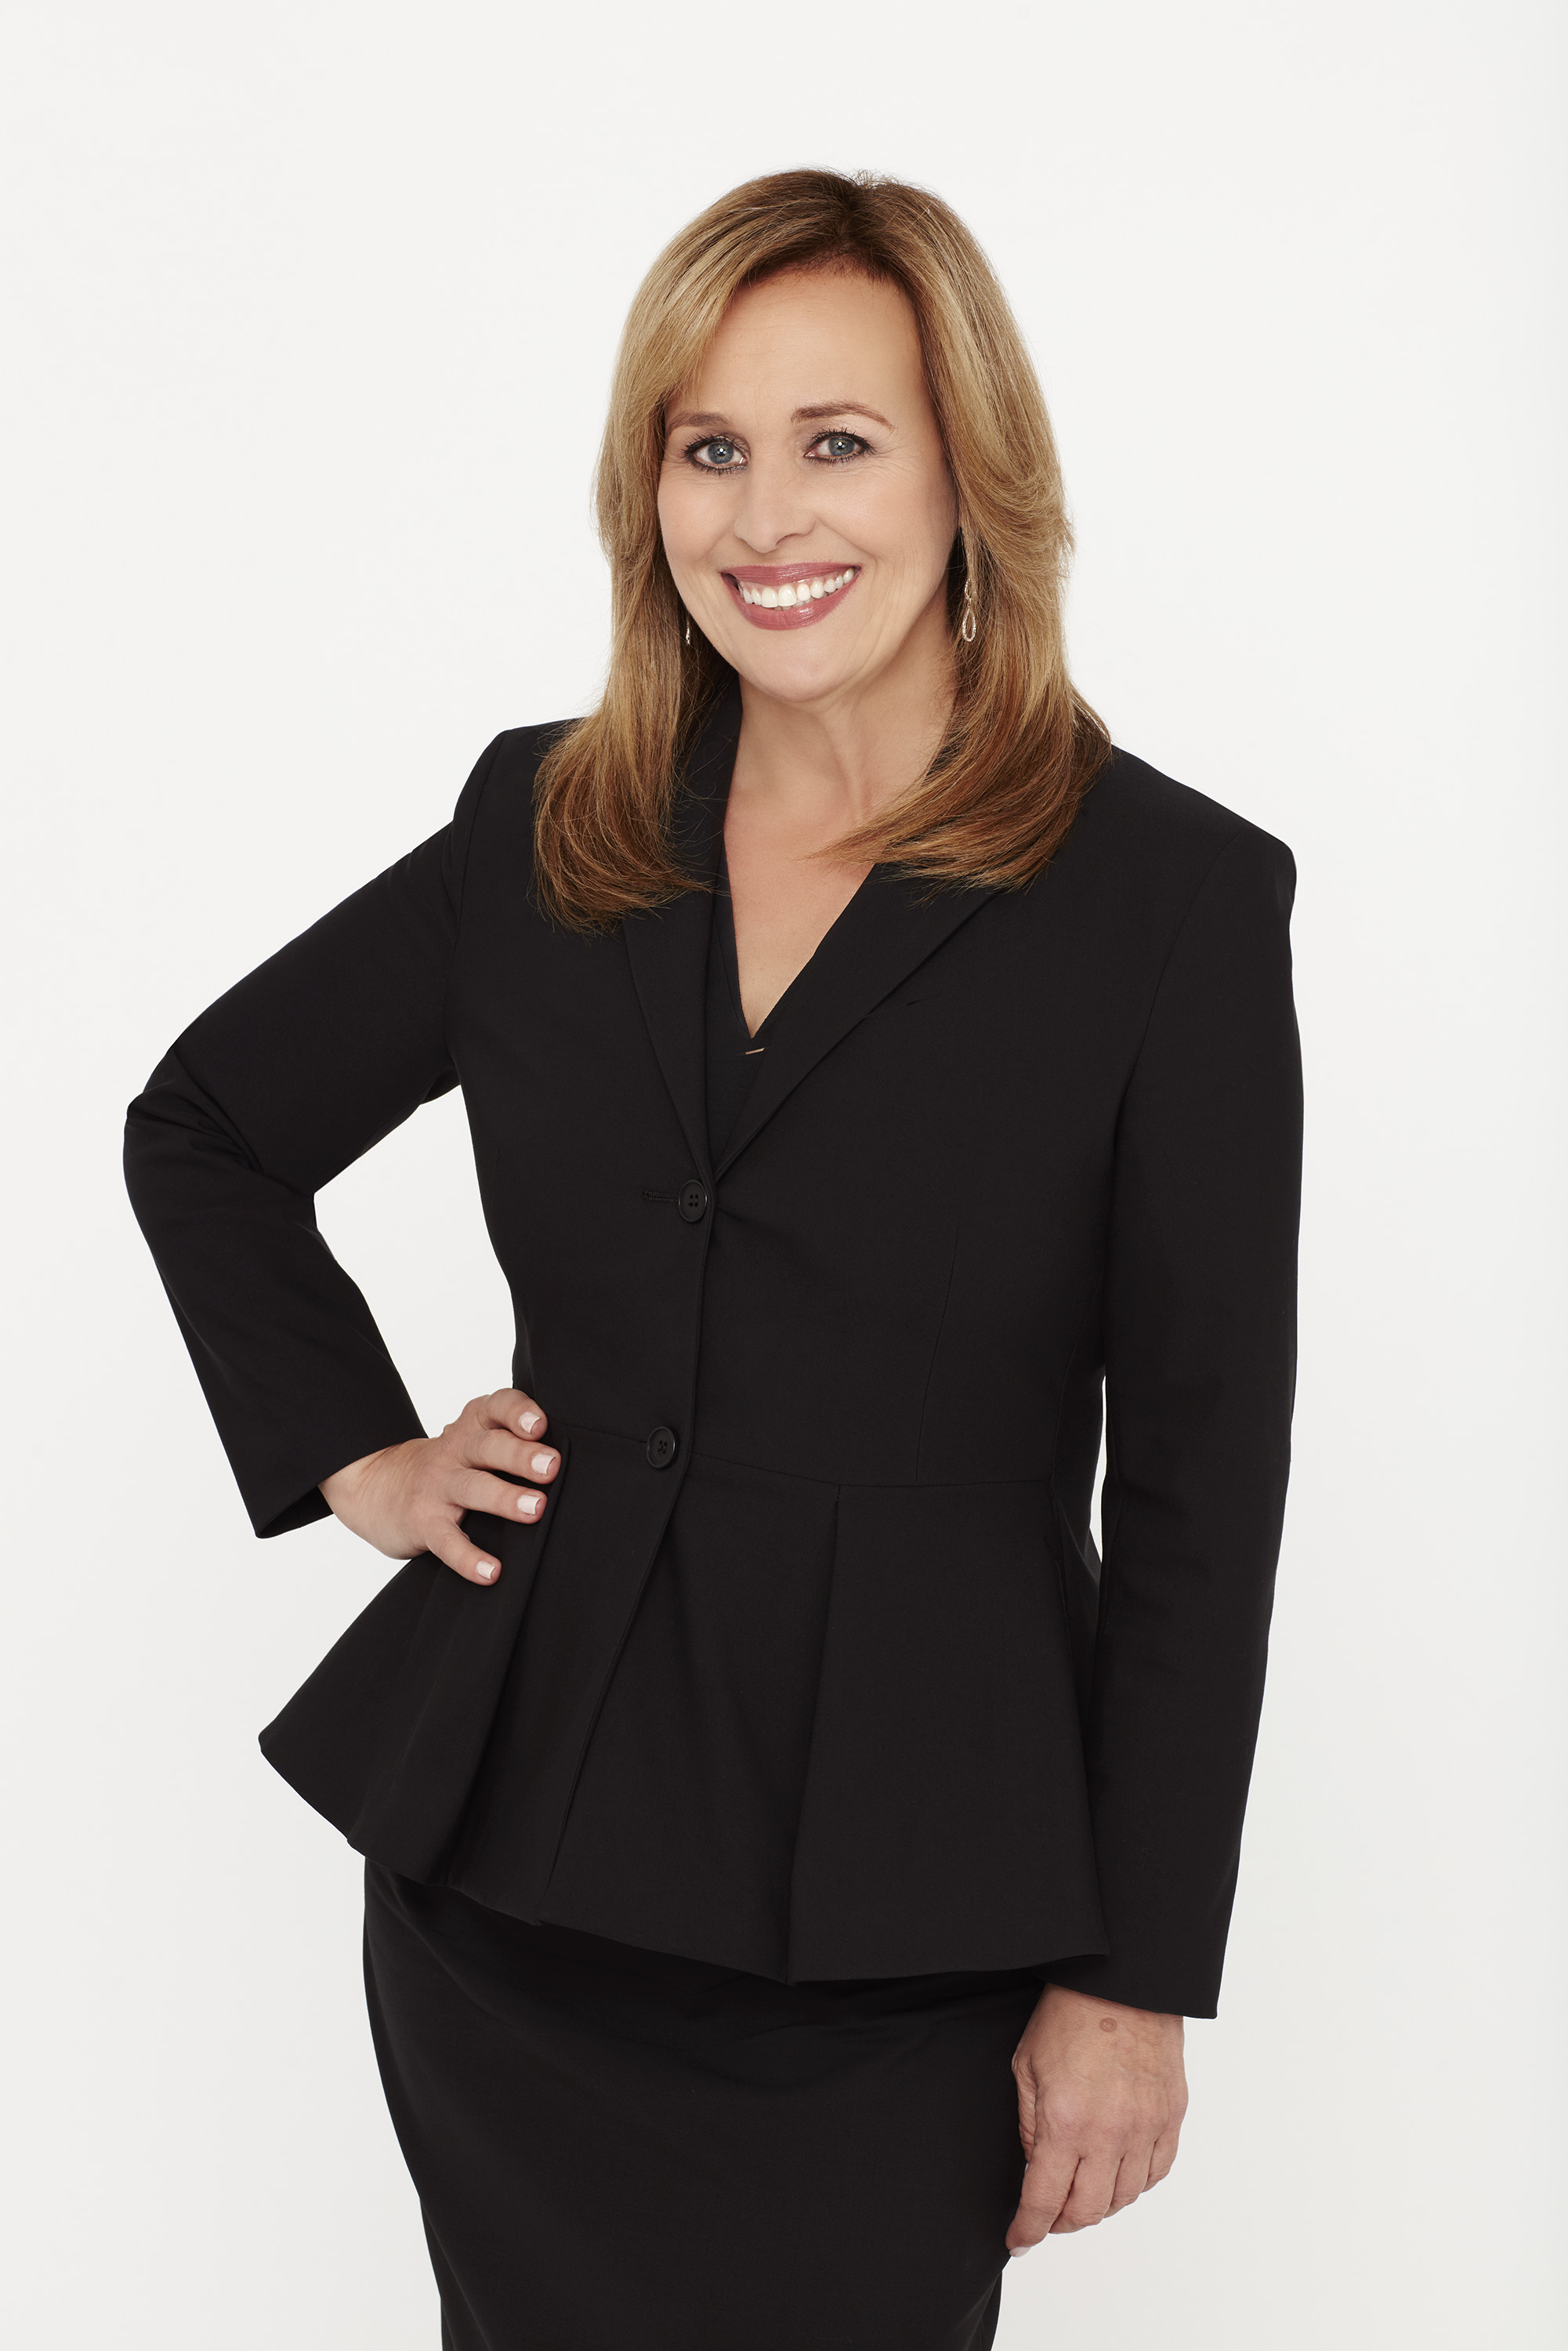 genie francis 2017genie francis net worth, genie francis 2016, genie francis age, genie francis husband, genie francis twitter, genie francis family, genie francis 2017, genie francis news, genie francis nutrisystem, genie francis movies, genie francis young, genie francis bio, genie francis height, genie francis imdb, genie francis pictures, genie francis face, genie francis belfast maine, genie francis images, genie francis jonathan frakes wedding, genie francis mother